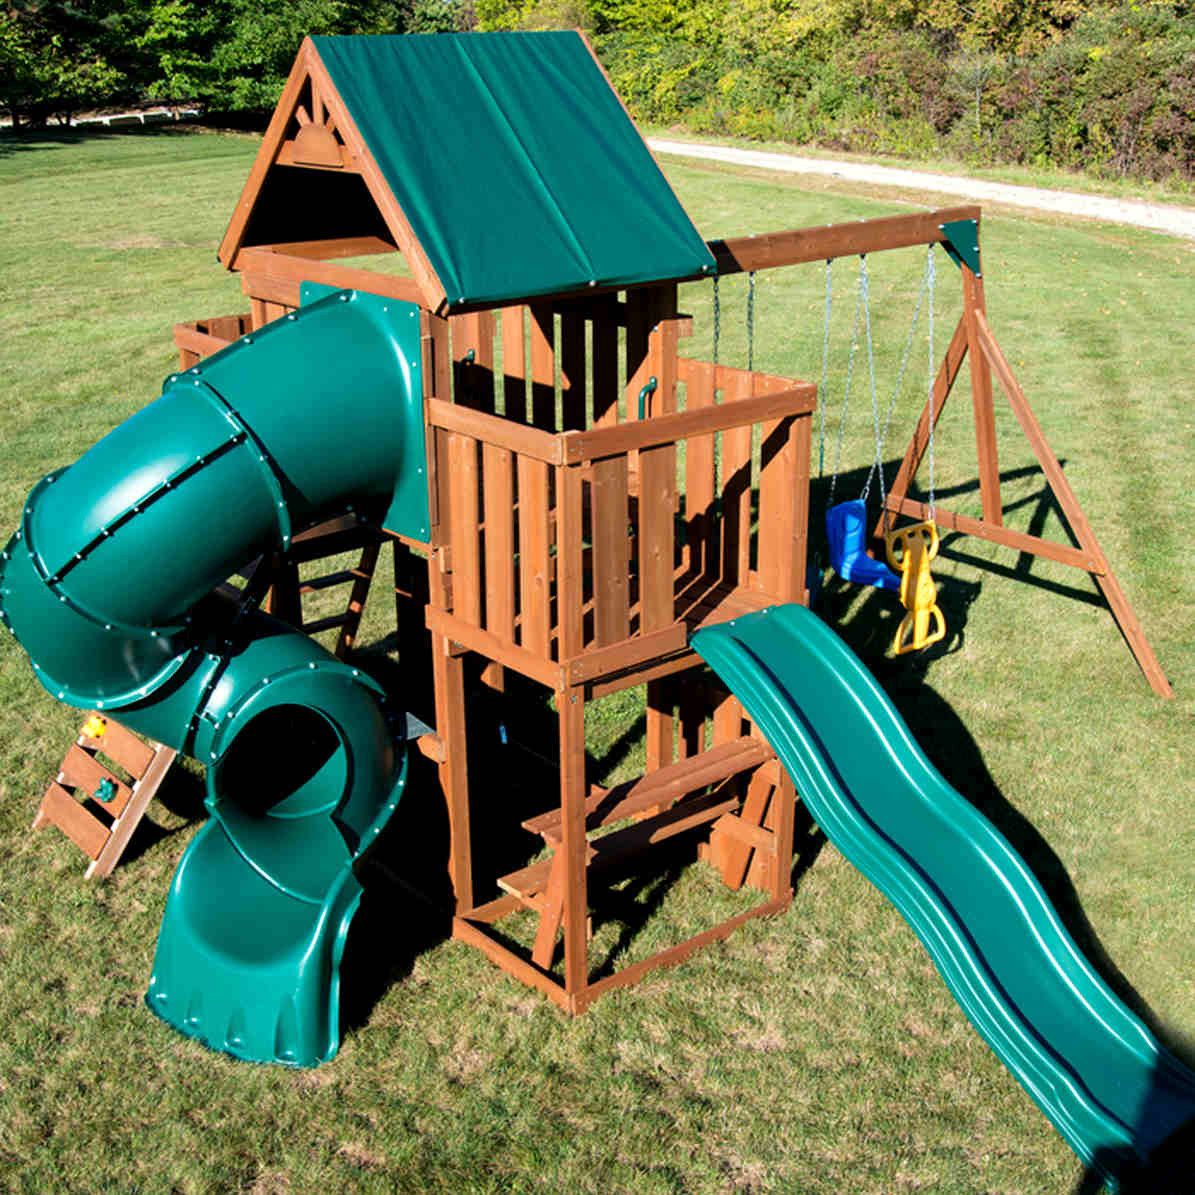 Tellico Terrace Complete Swing Set (WS-8359) Aerial